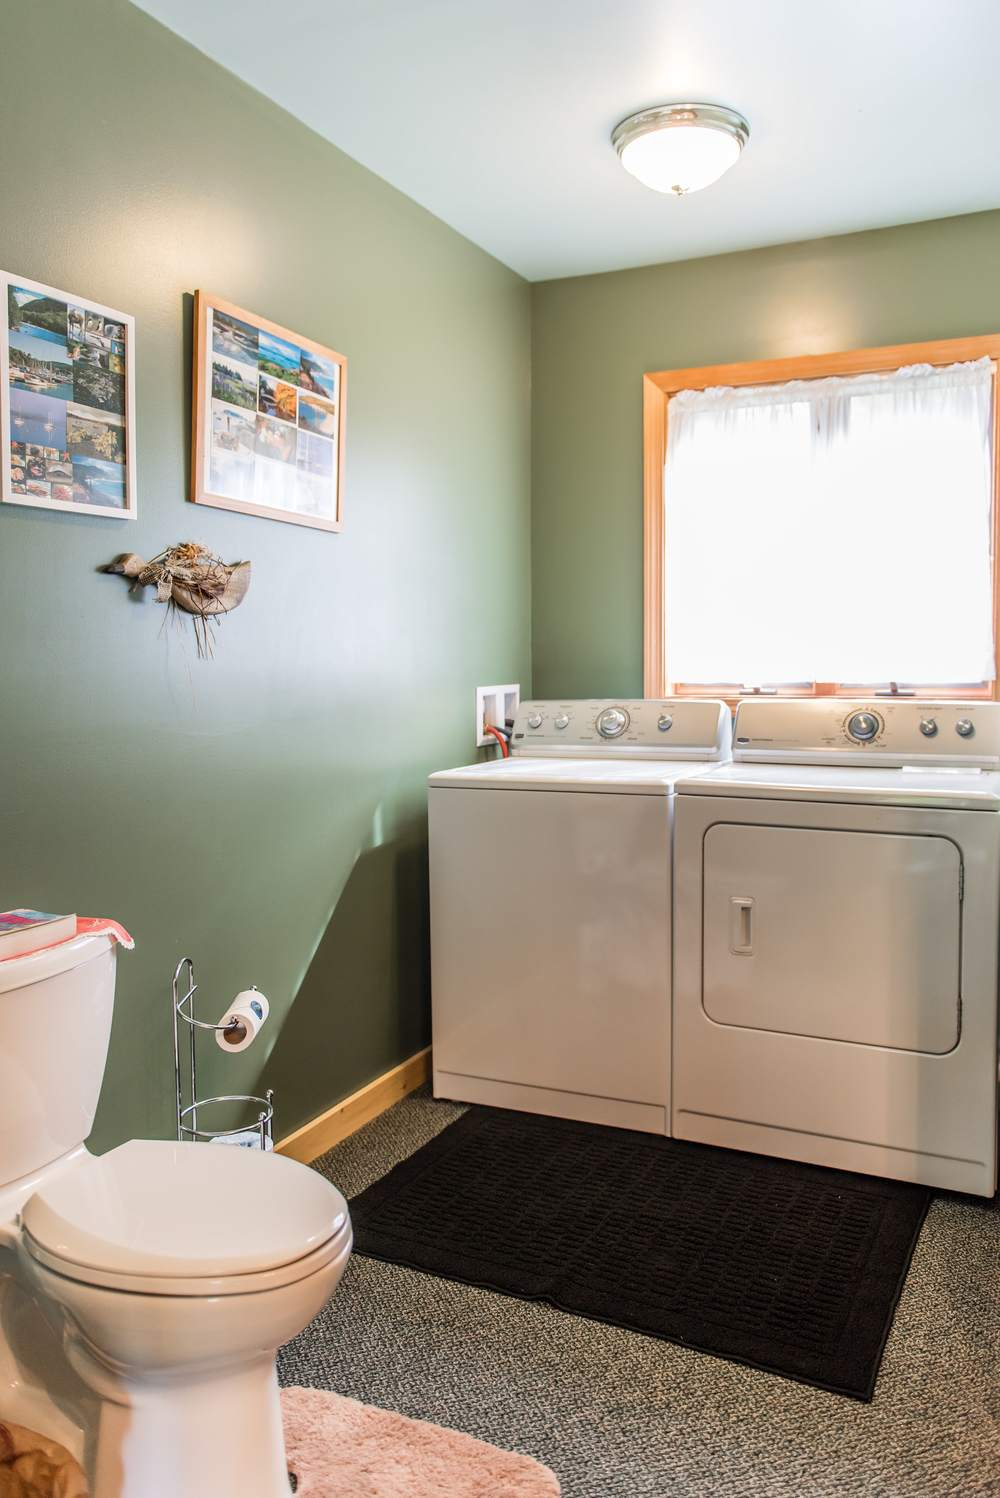 Downstairs bathroom with full laundry facilities.